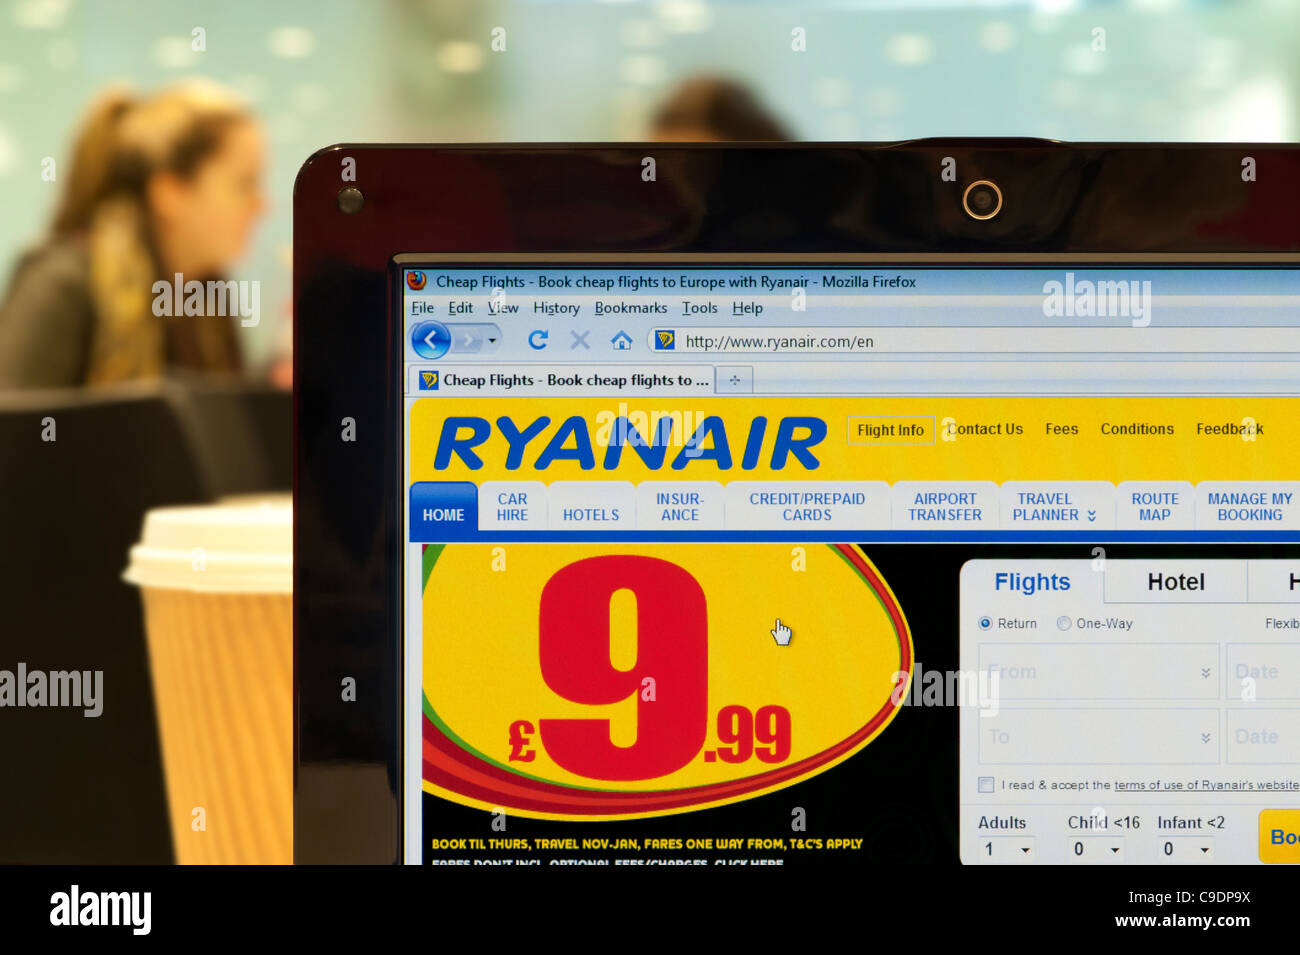 The Ryanair website shot in a coffee shop environment (Editorial use only: print, TV, e-book and editorial - Stock Image